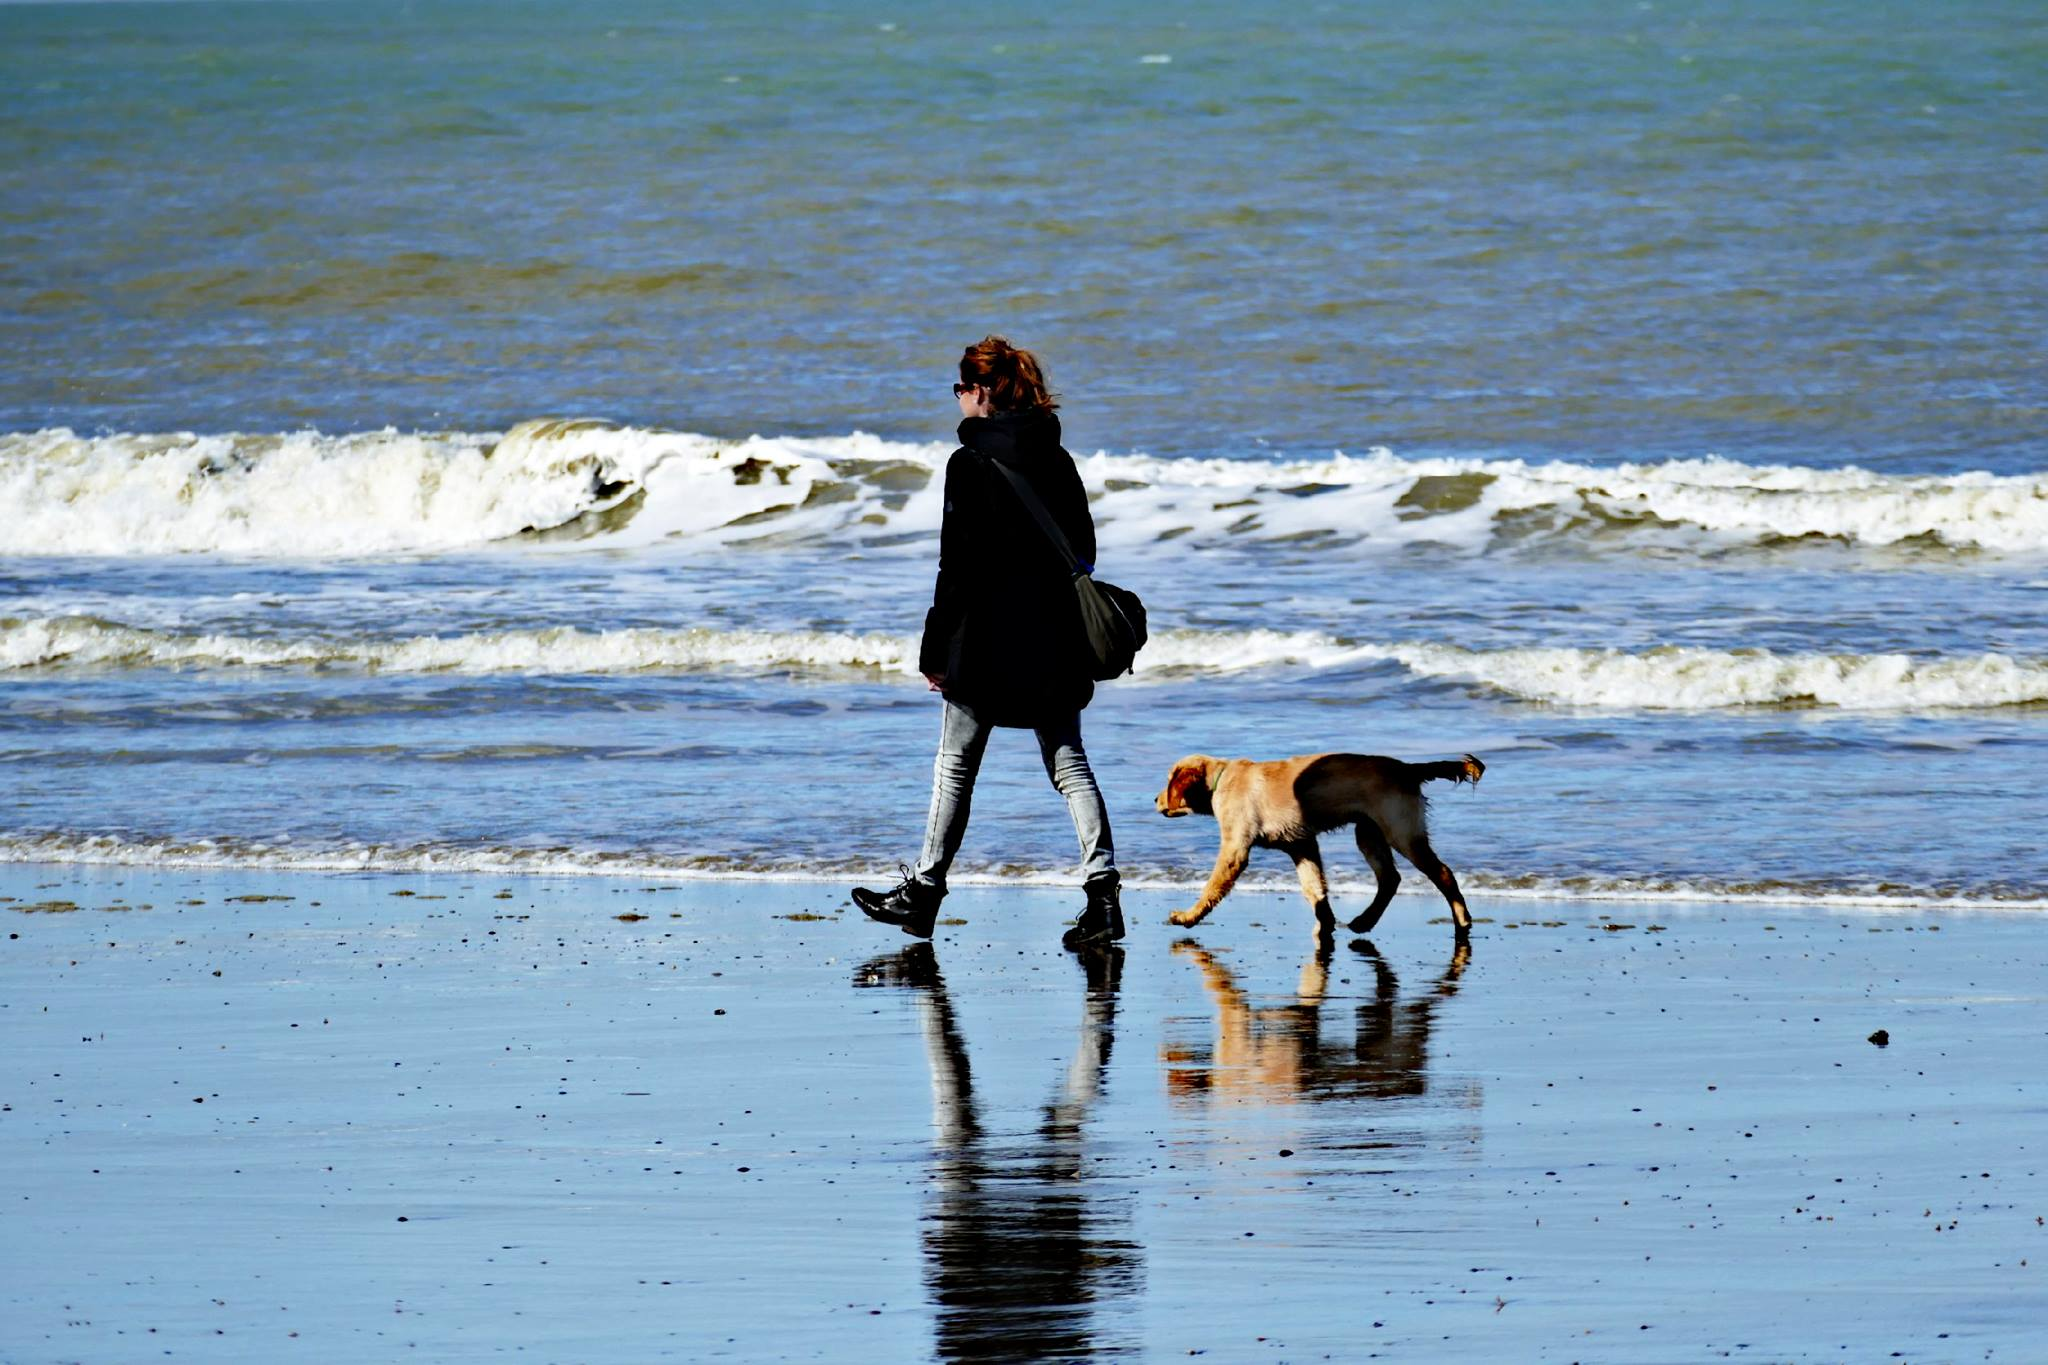 Dogs and Kids-Ueber mich-Claudia Peter-Plum mit Bodhi am Meer